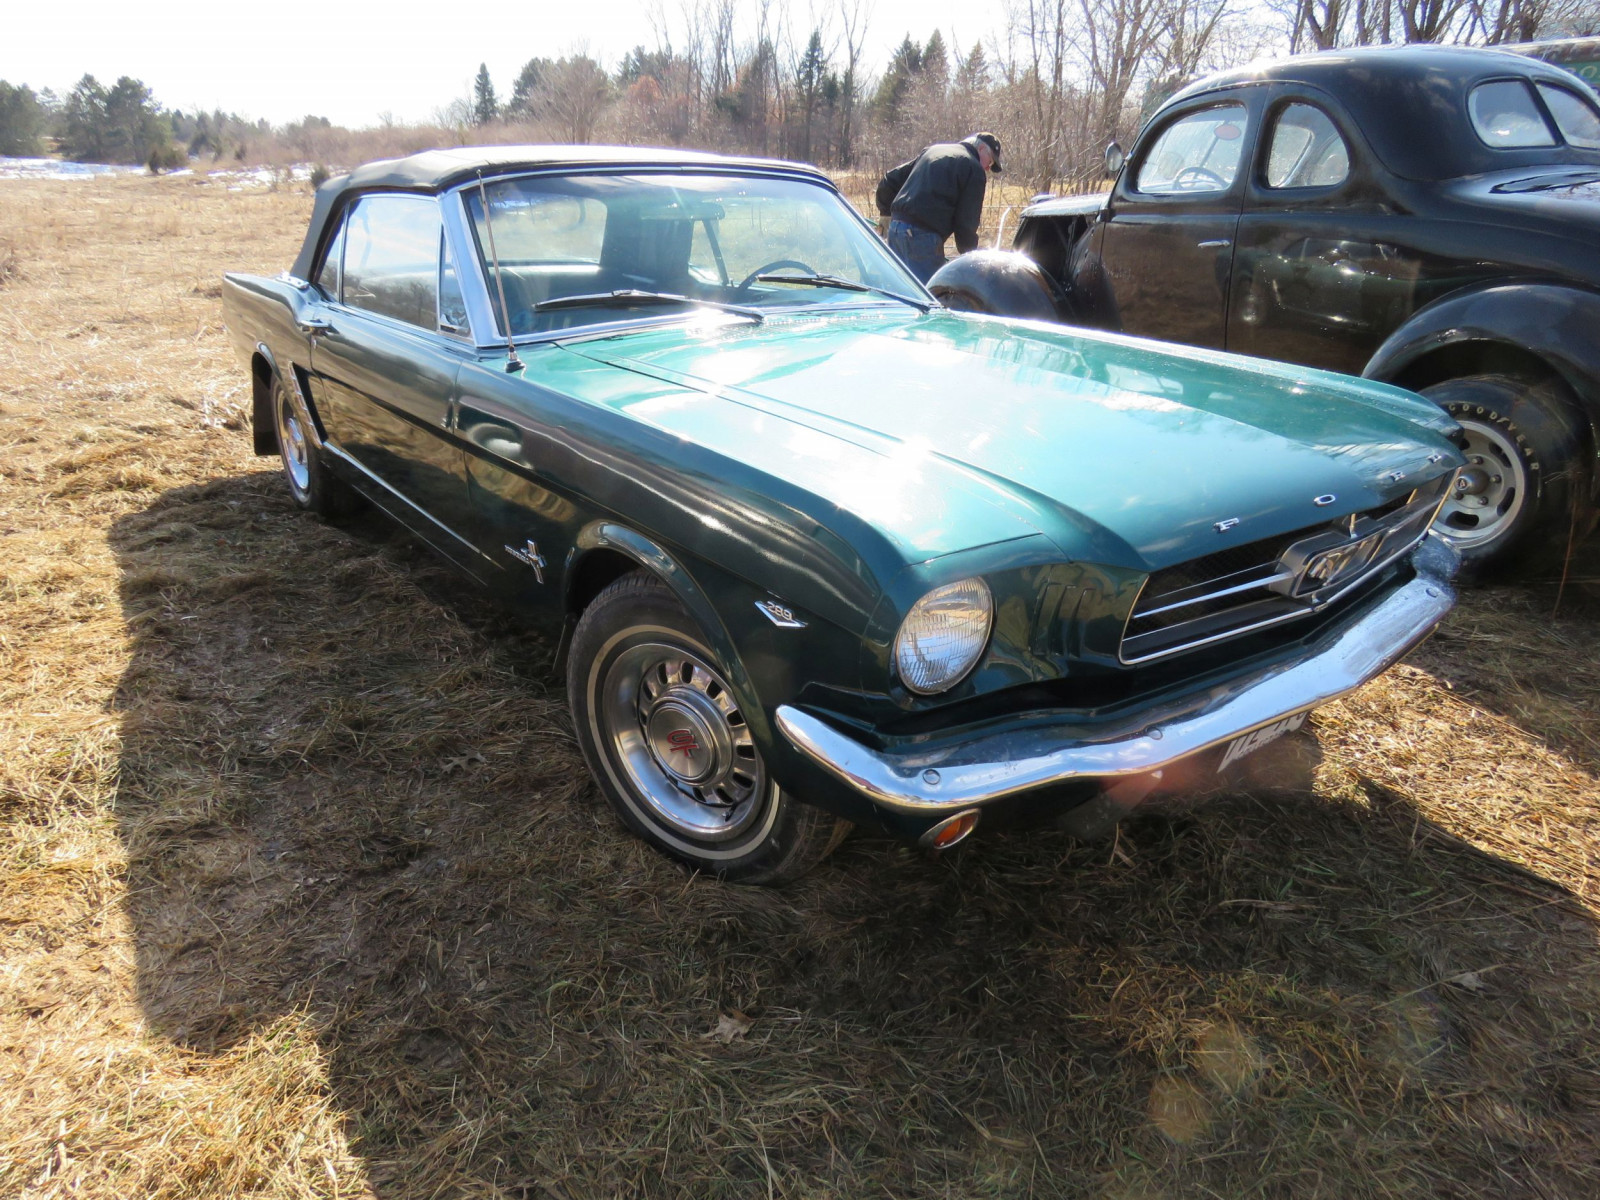 1965 Ford Mustang Convertible - Image 1